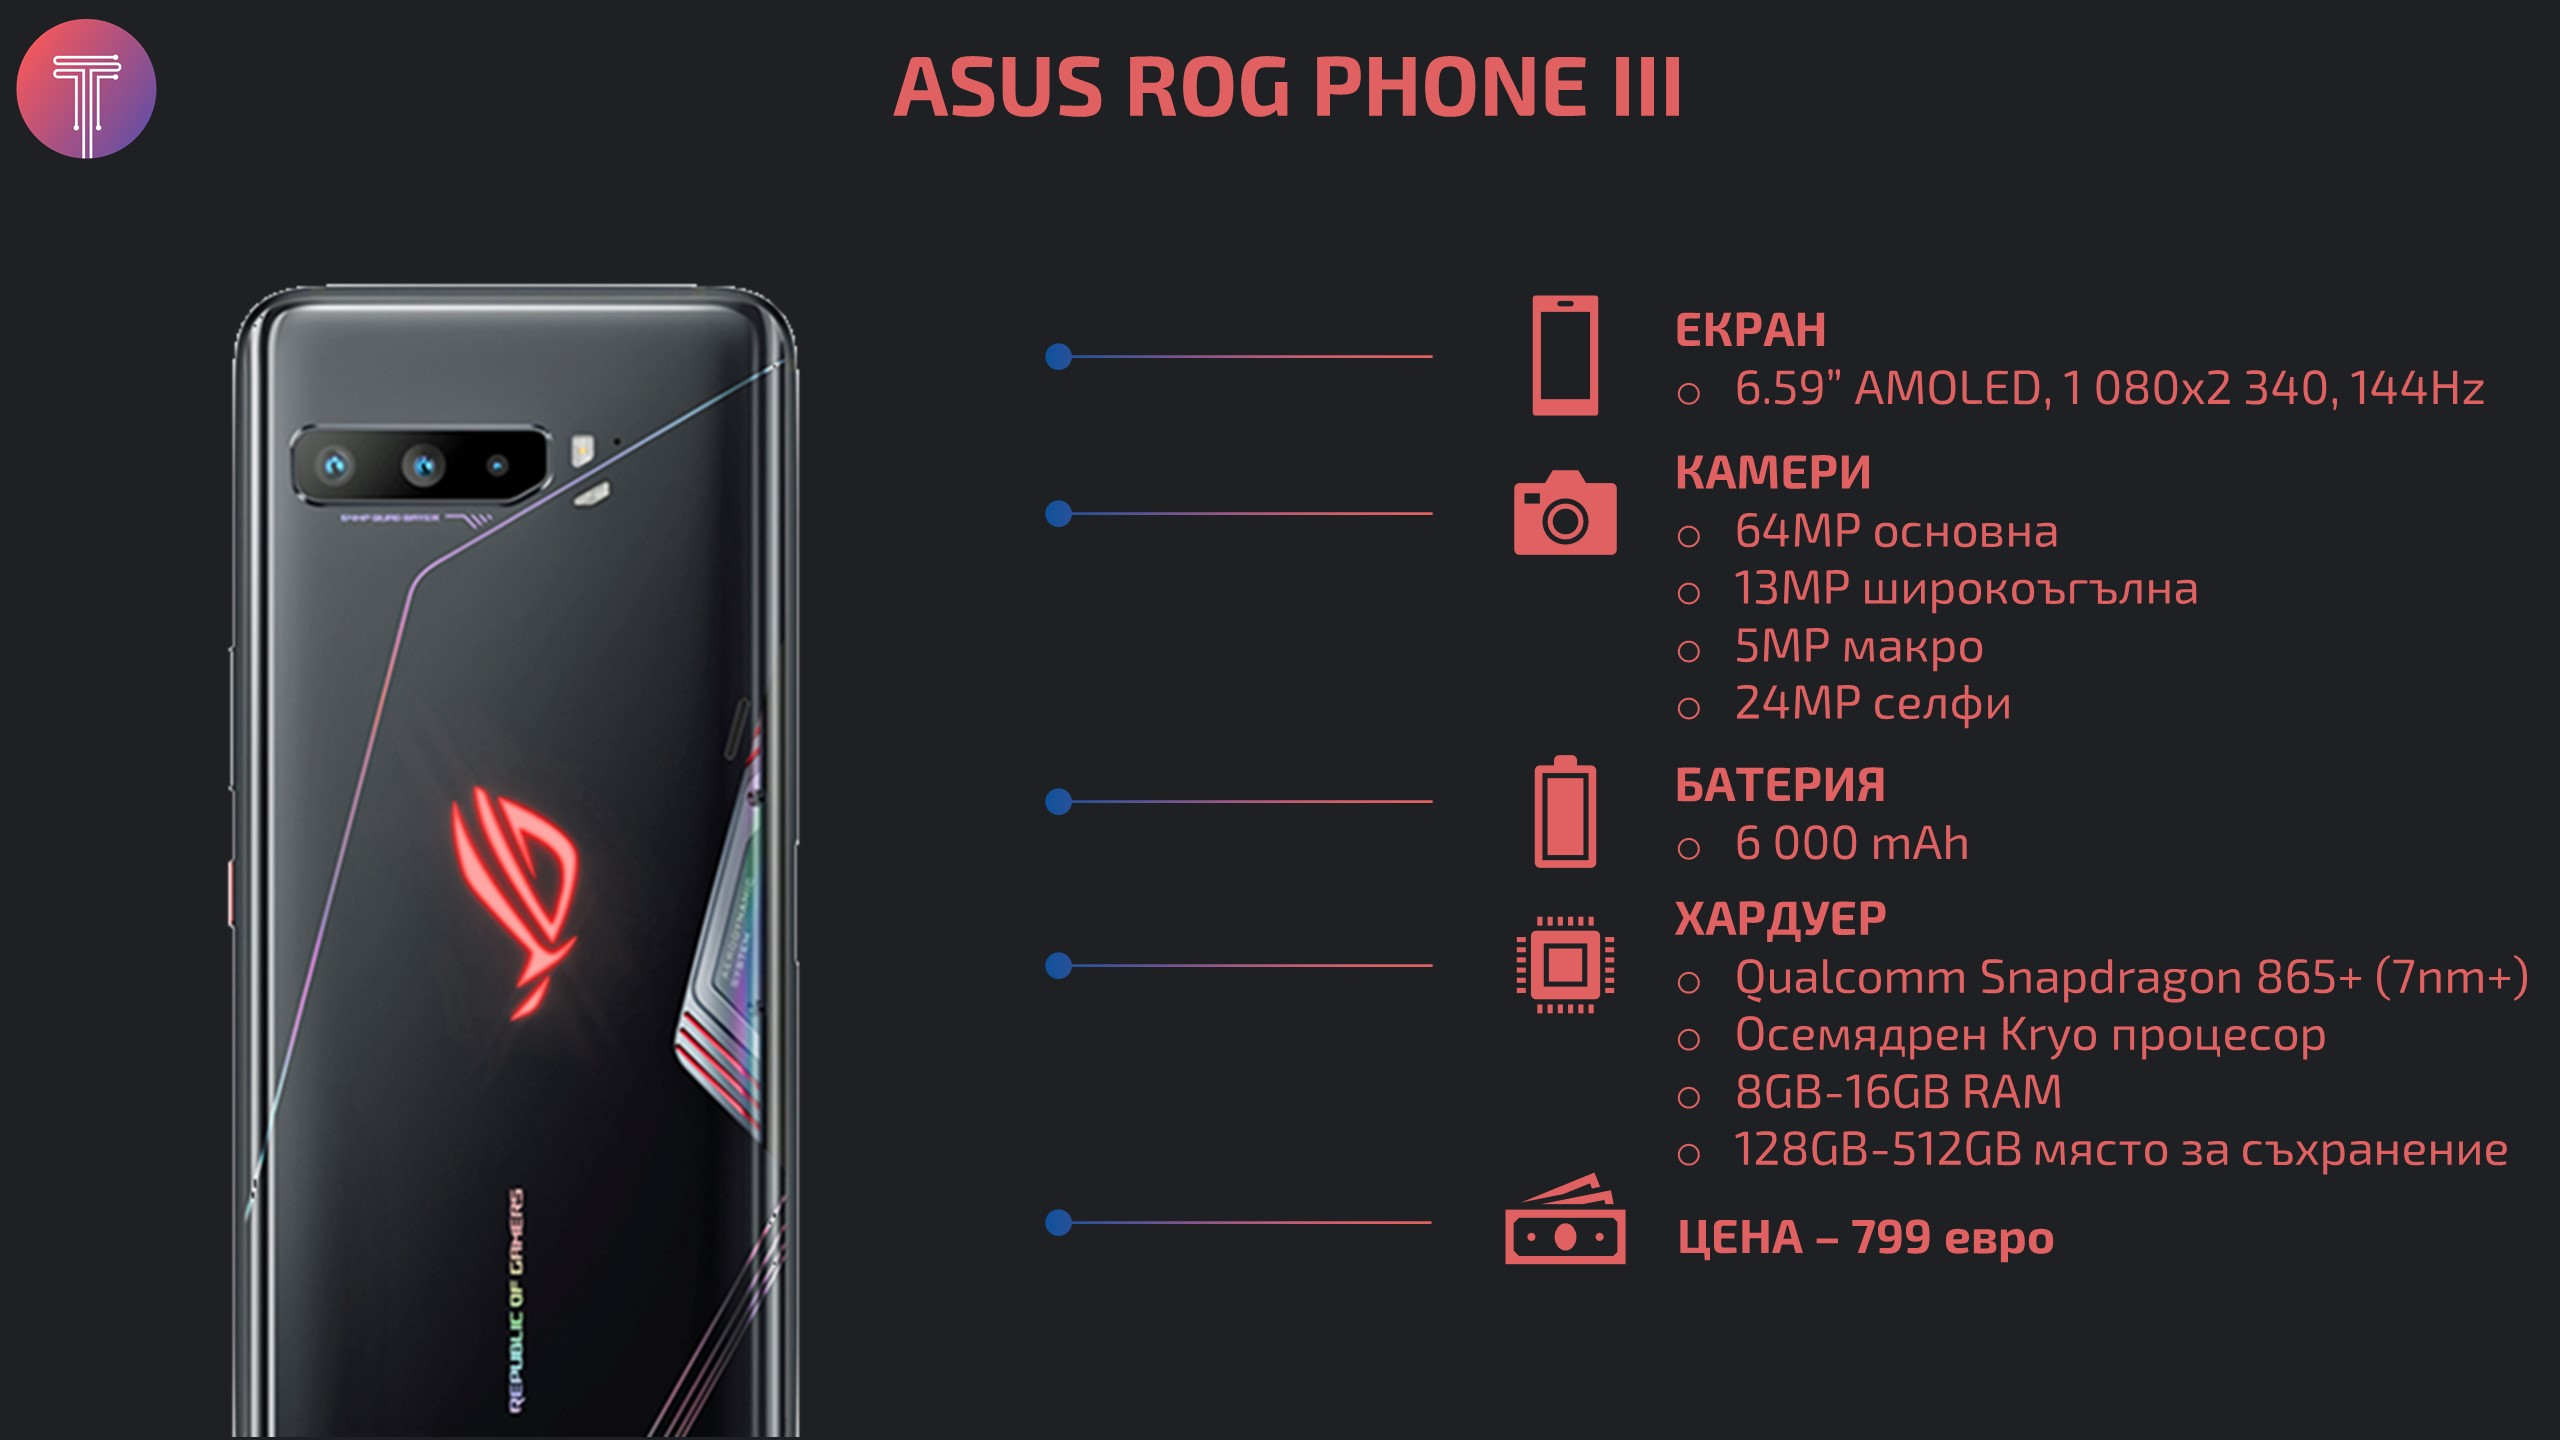 Asus-rog-phone-3-infographic